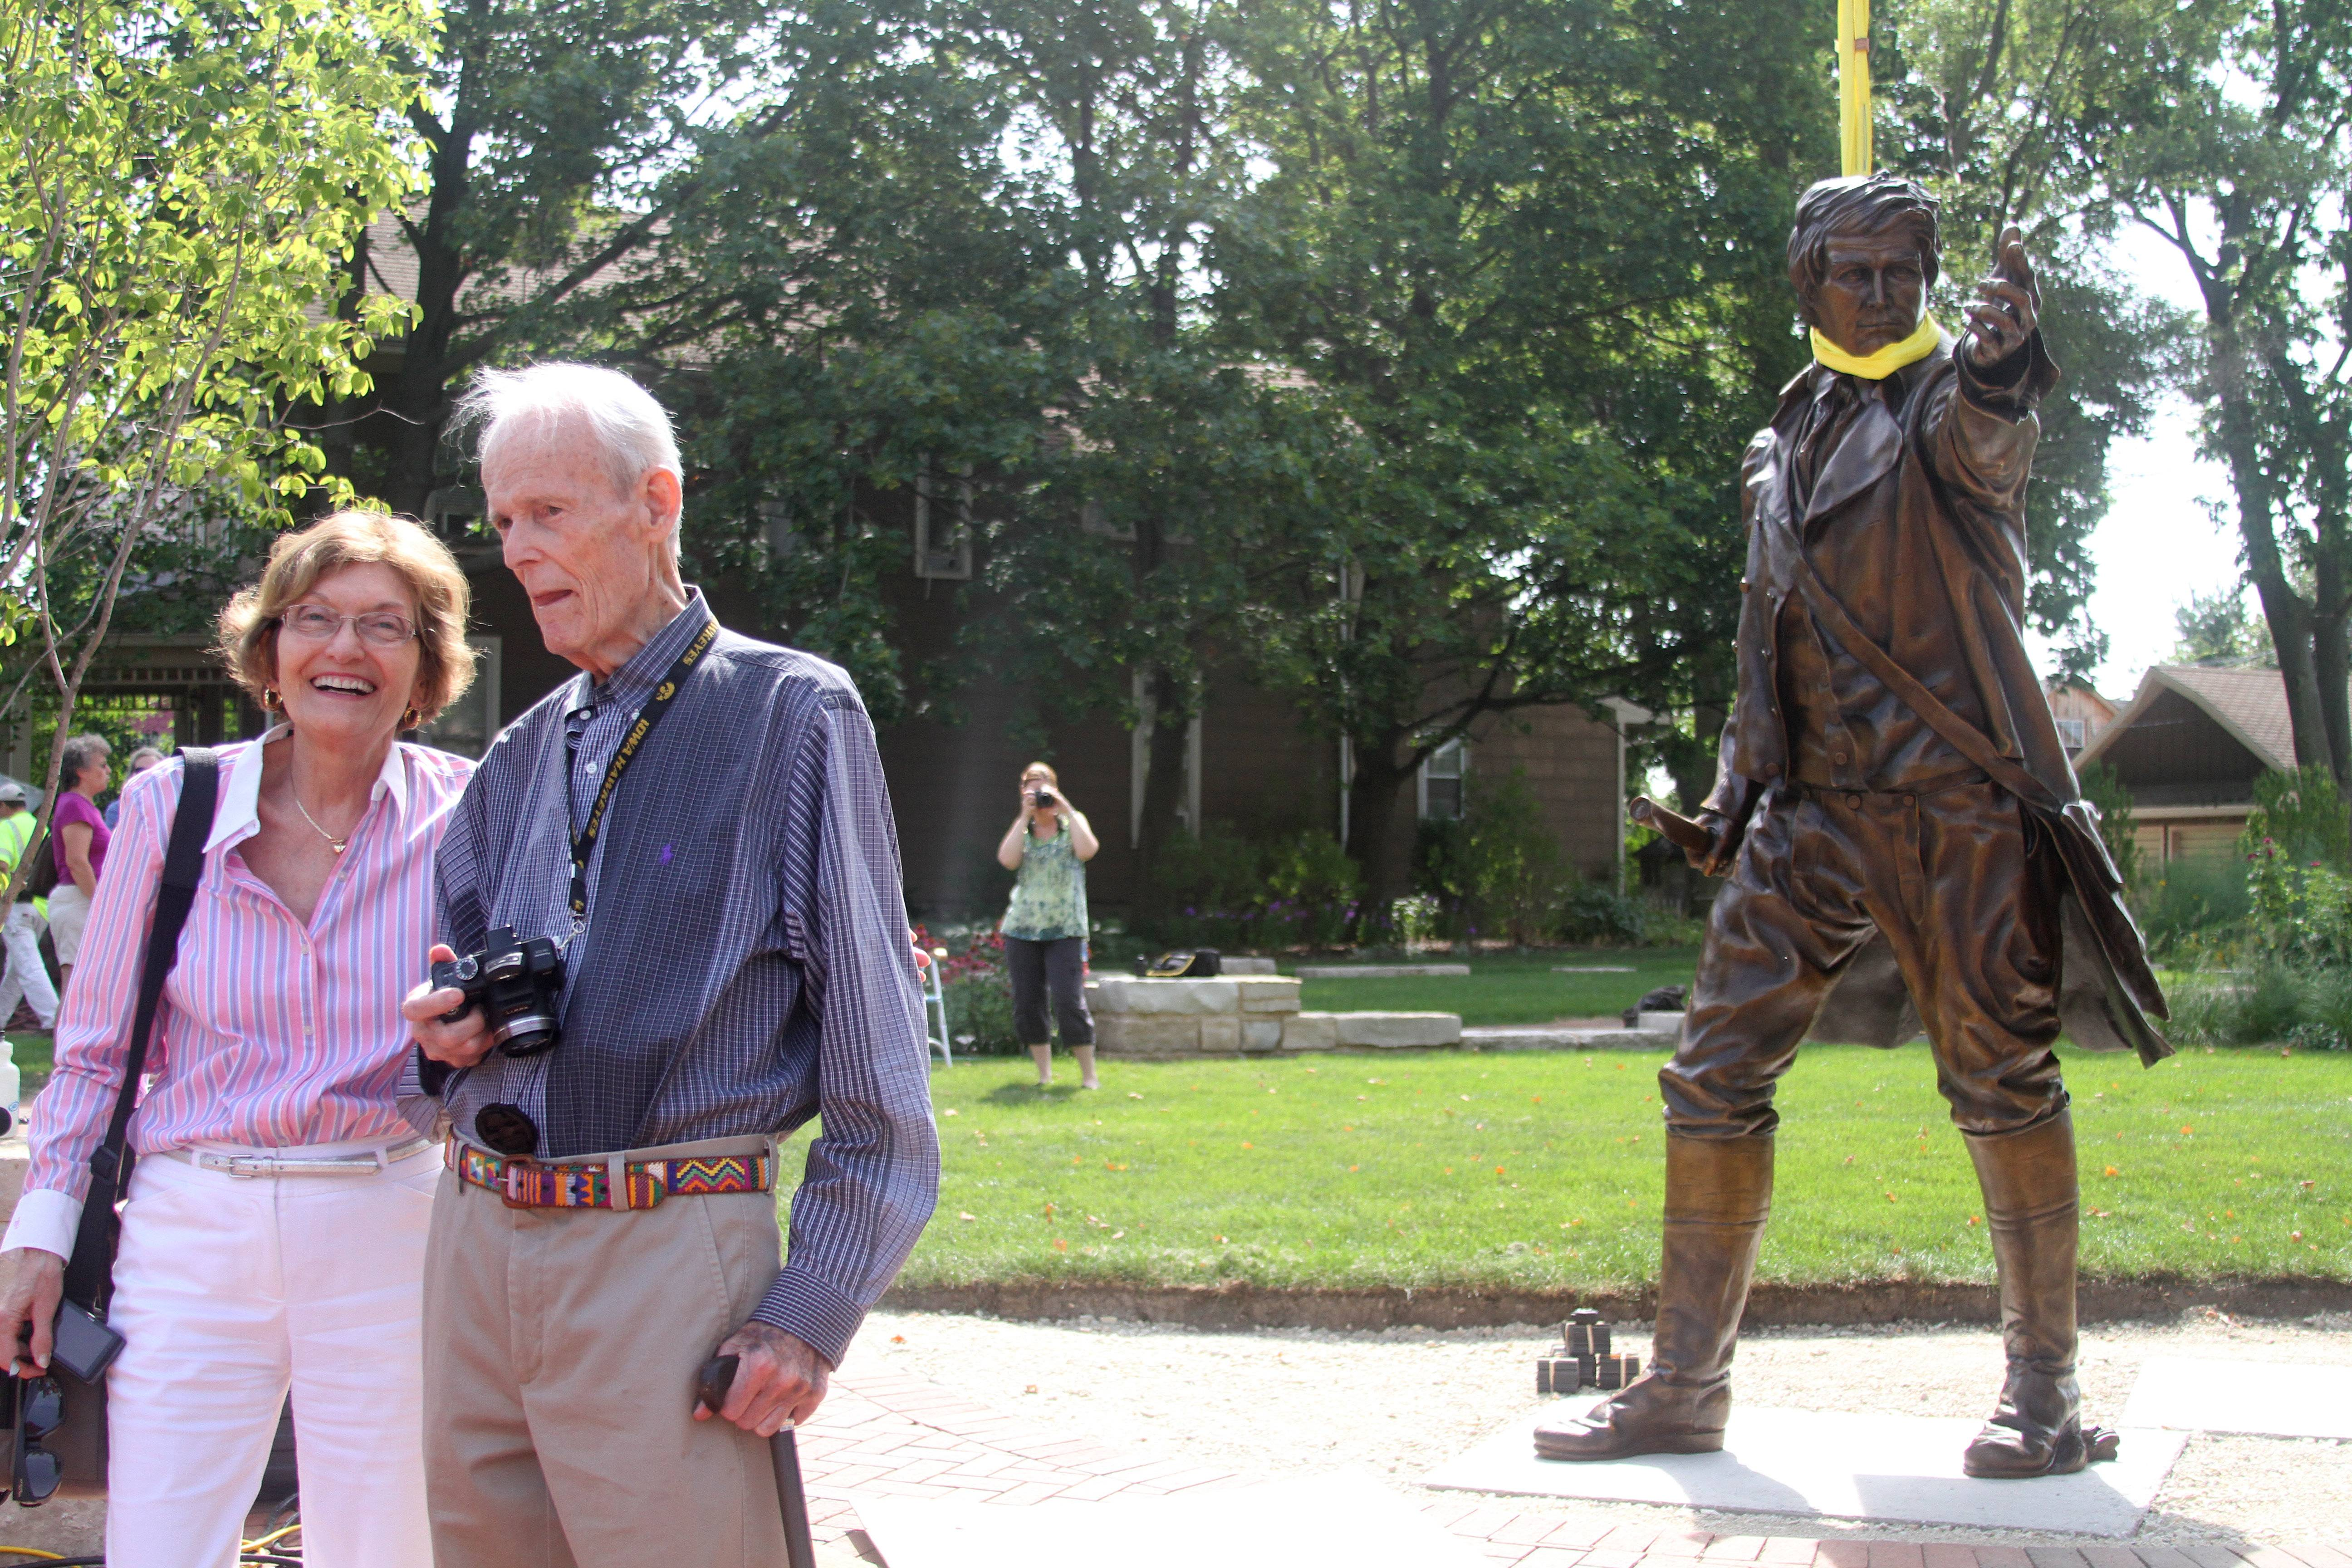 Mary and Dick Locher of Naperville were married 60 years before Dick's death Sunday at age 88. Here they attend the 2013 placement of a 9-foot-tall sculpture Dick Locher created of Naperville town founder Joseph Naper.